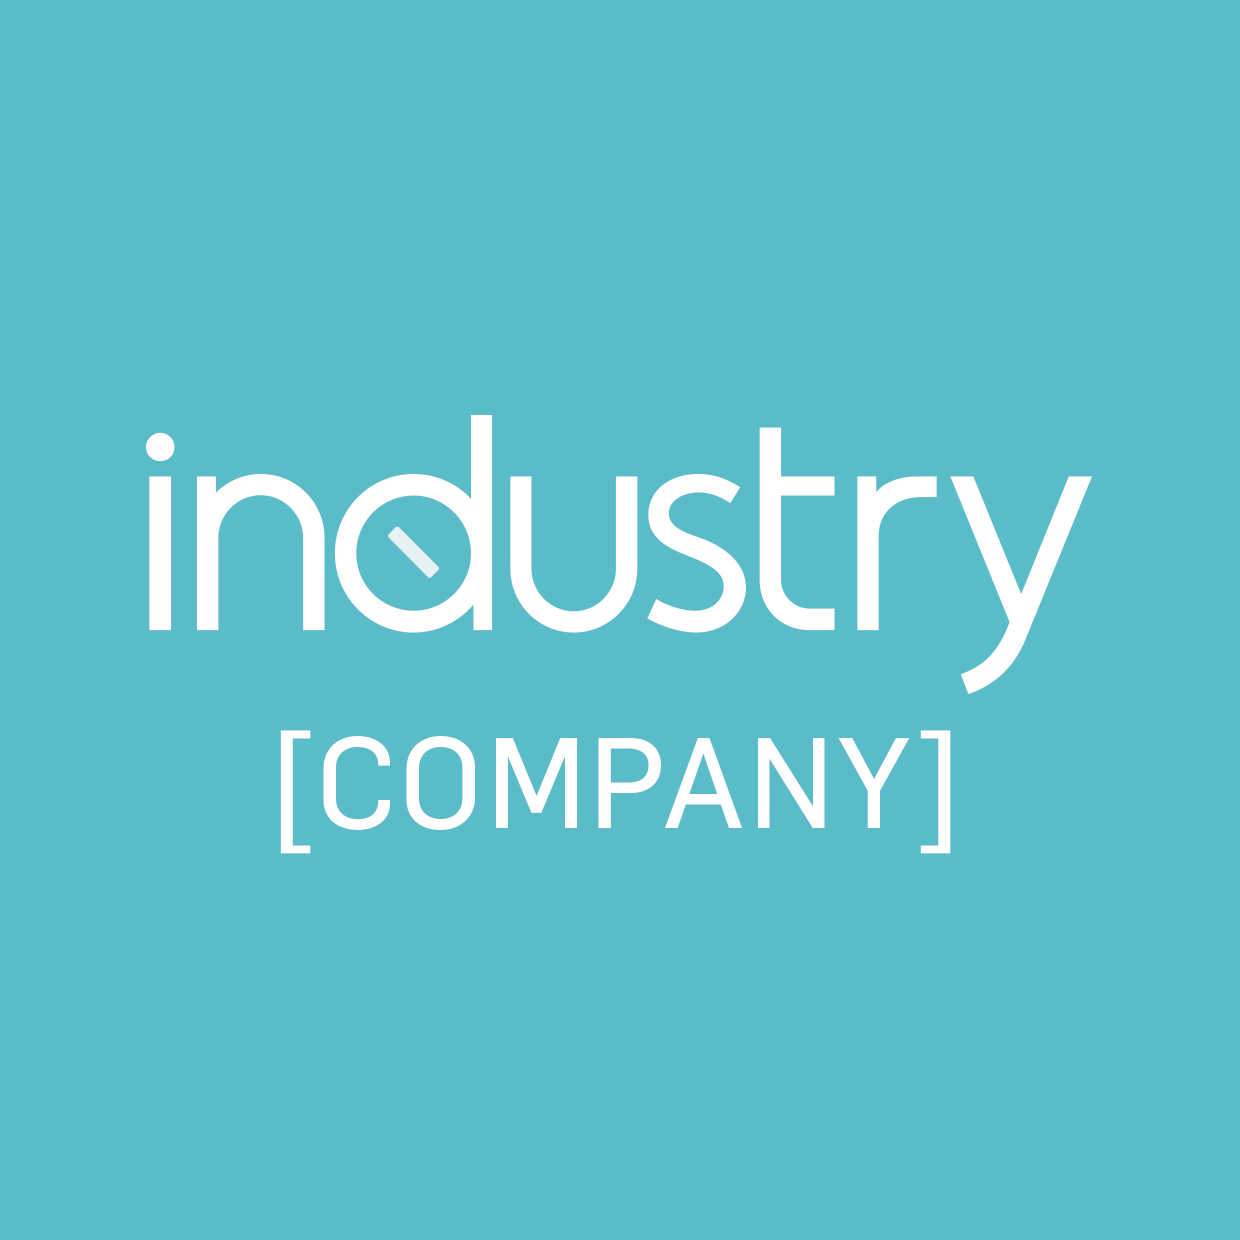 No-Coast-Icons_indsutry-company.png